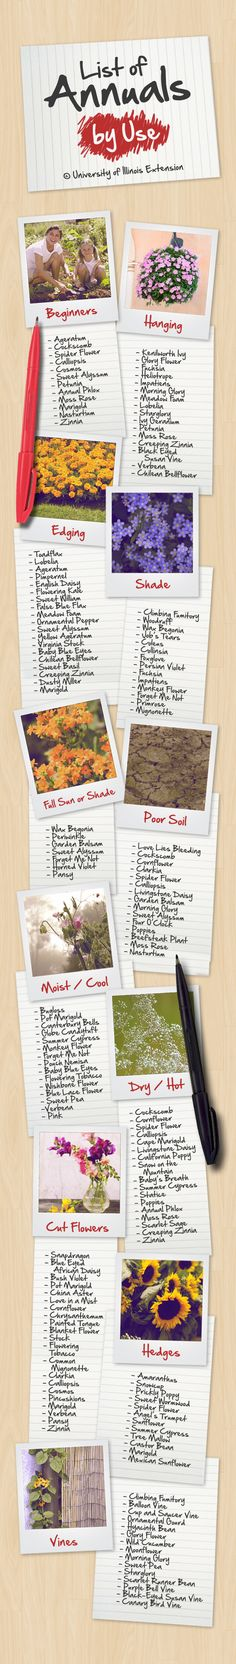 List of Annuals by Use #plants #flower #gardening #resource